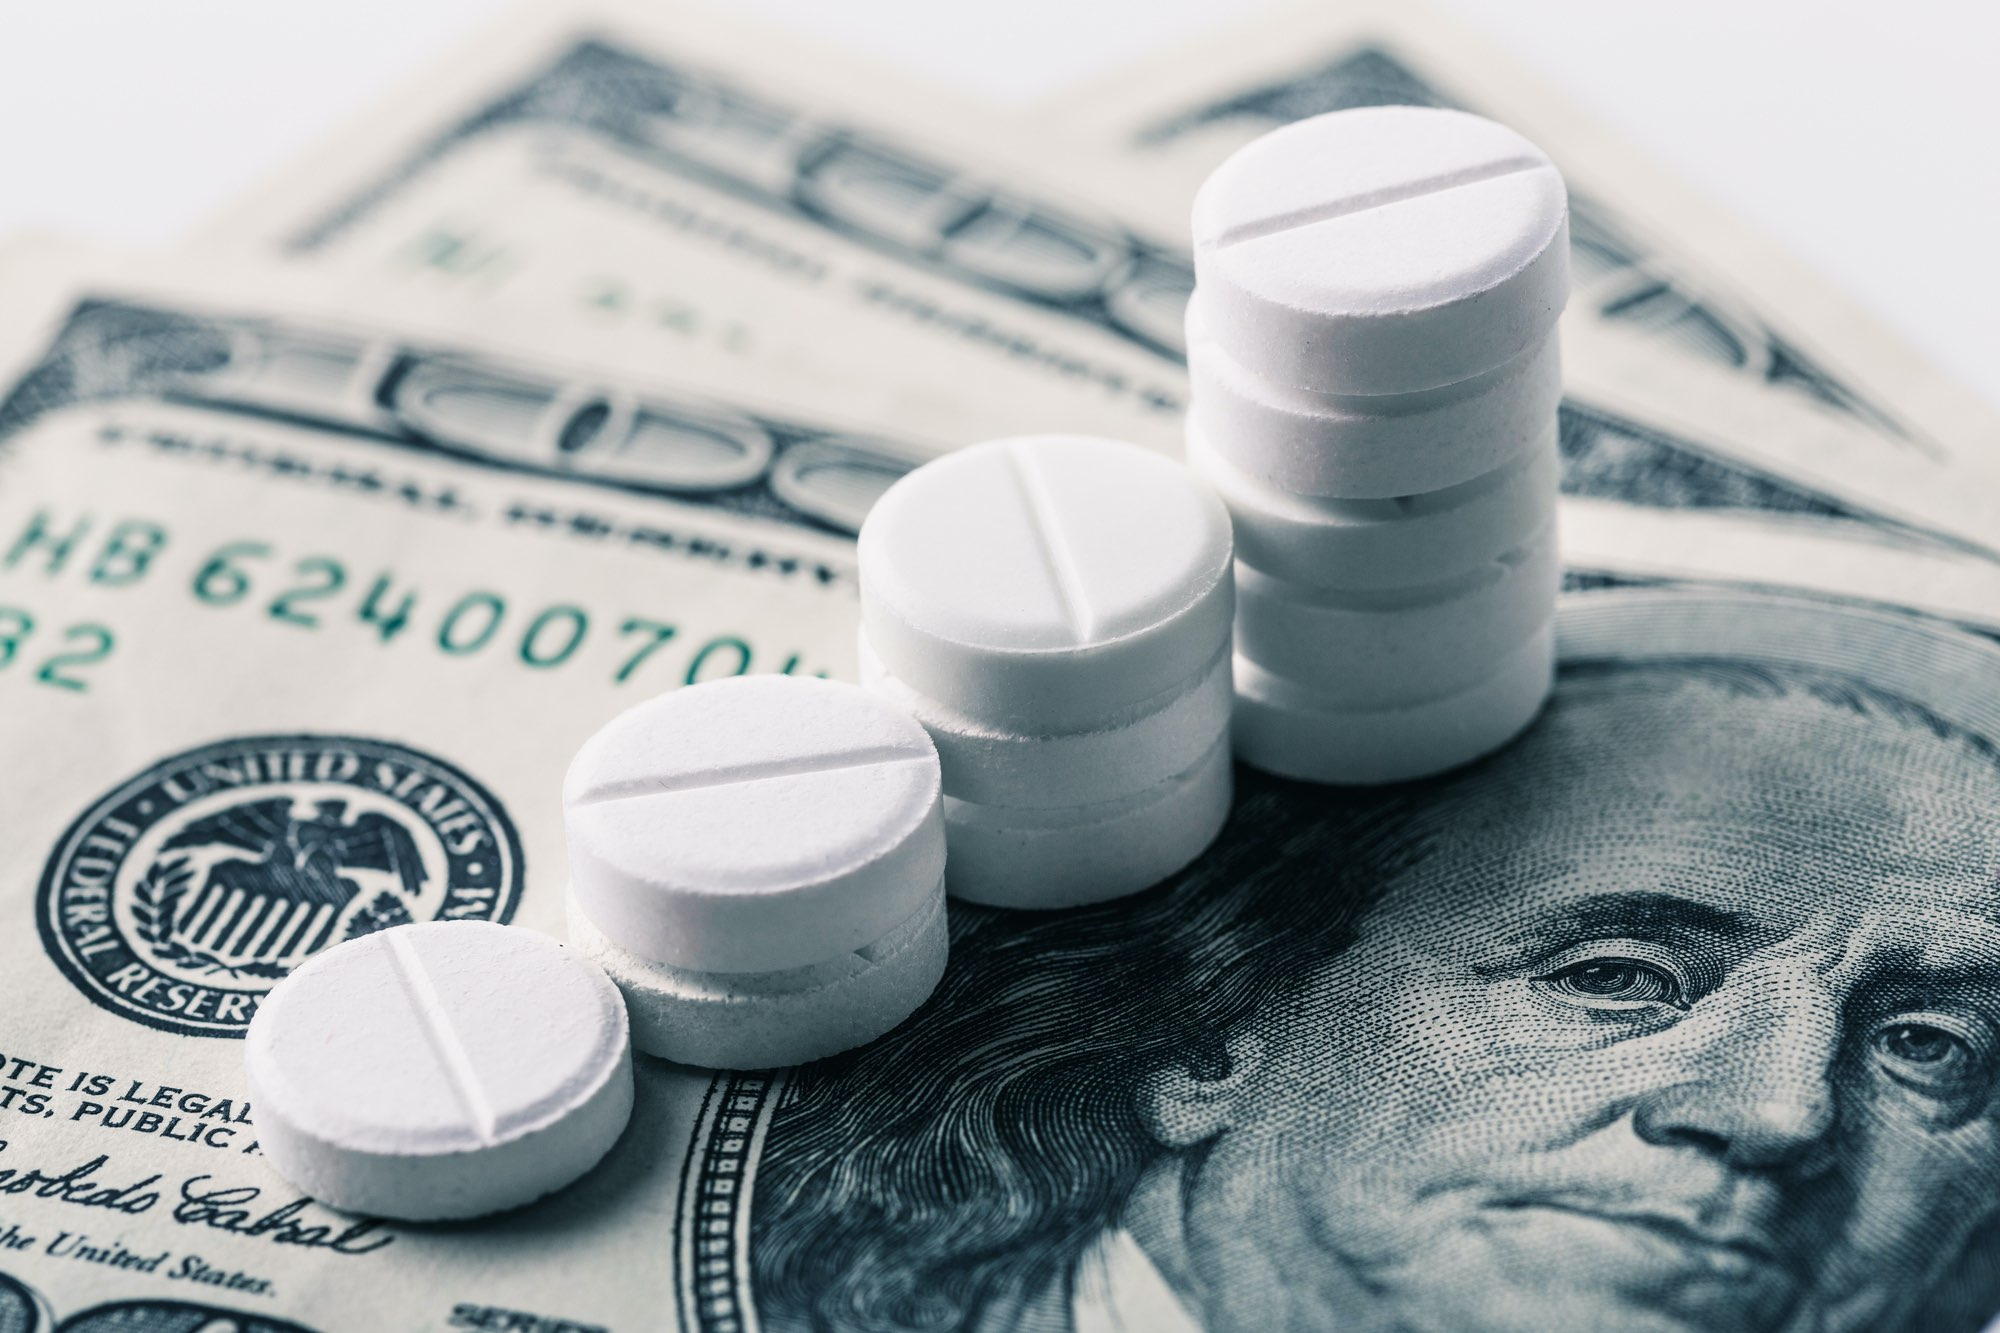 5 Things You Can Do to Save Money on Prescriptions